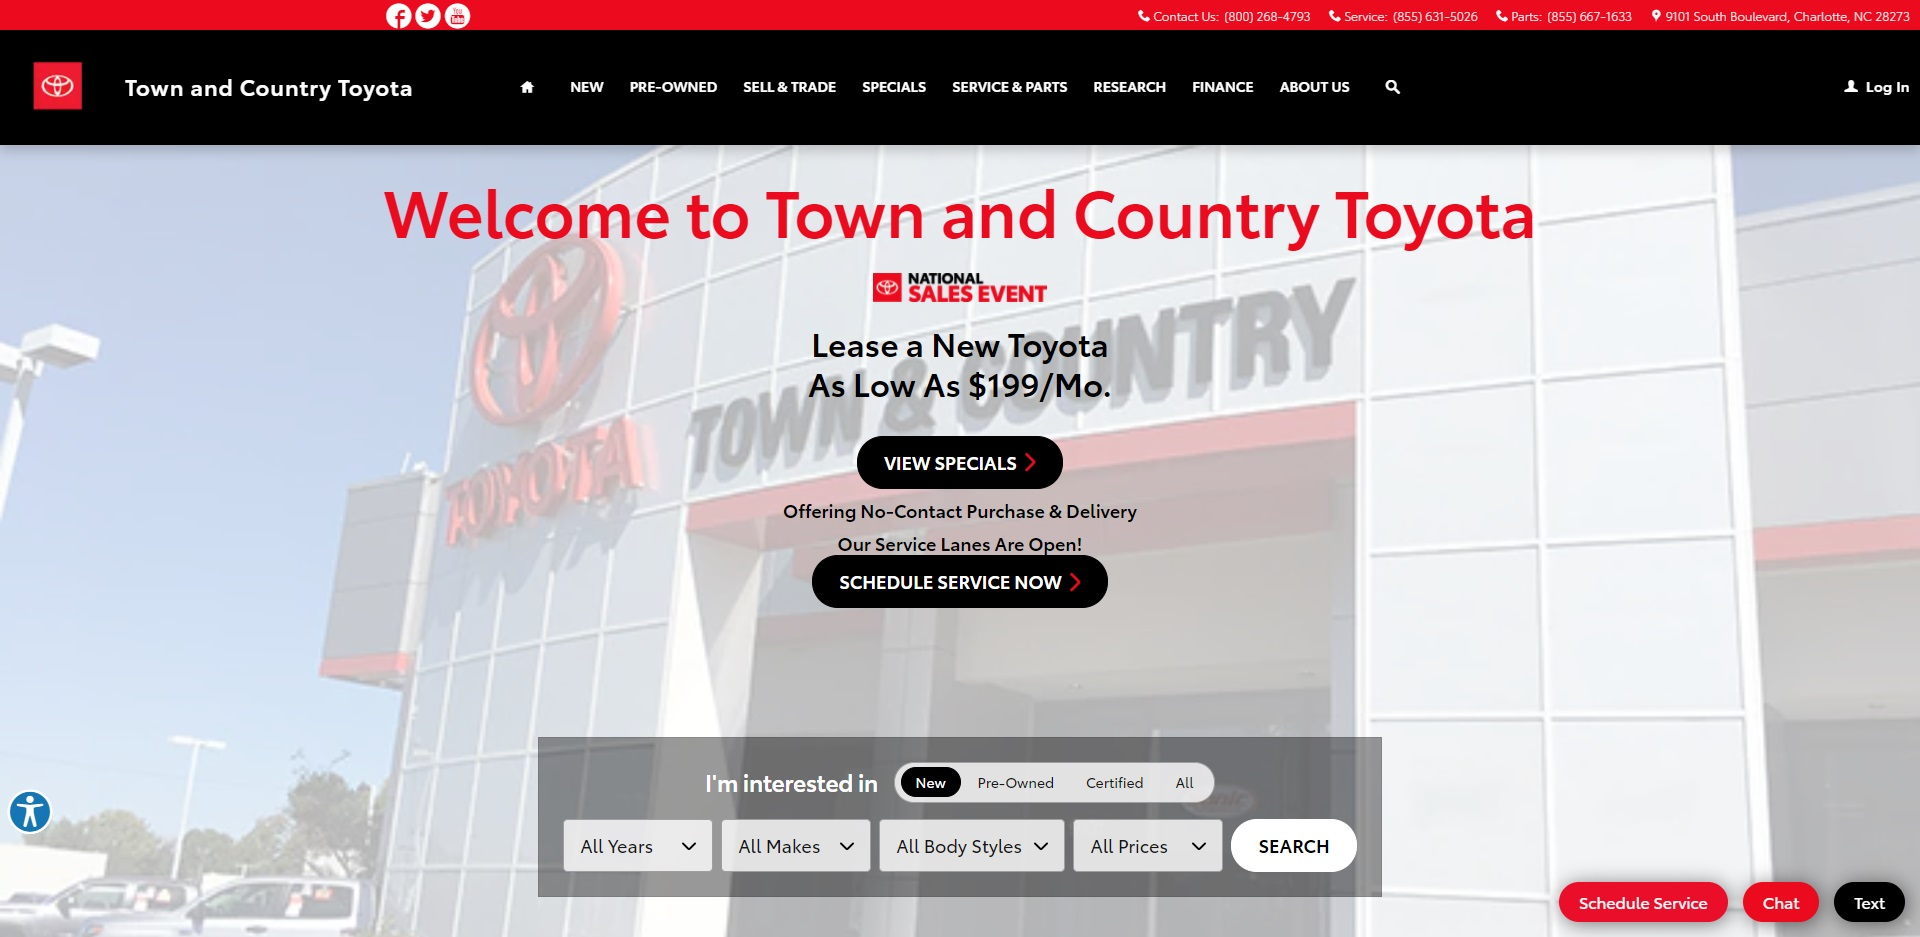 The Best Toyota Dealers in Charlotte, NC